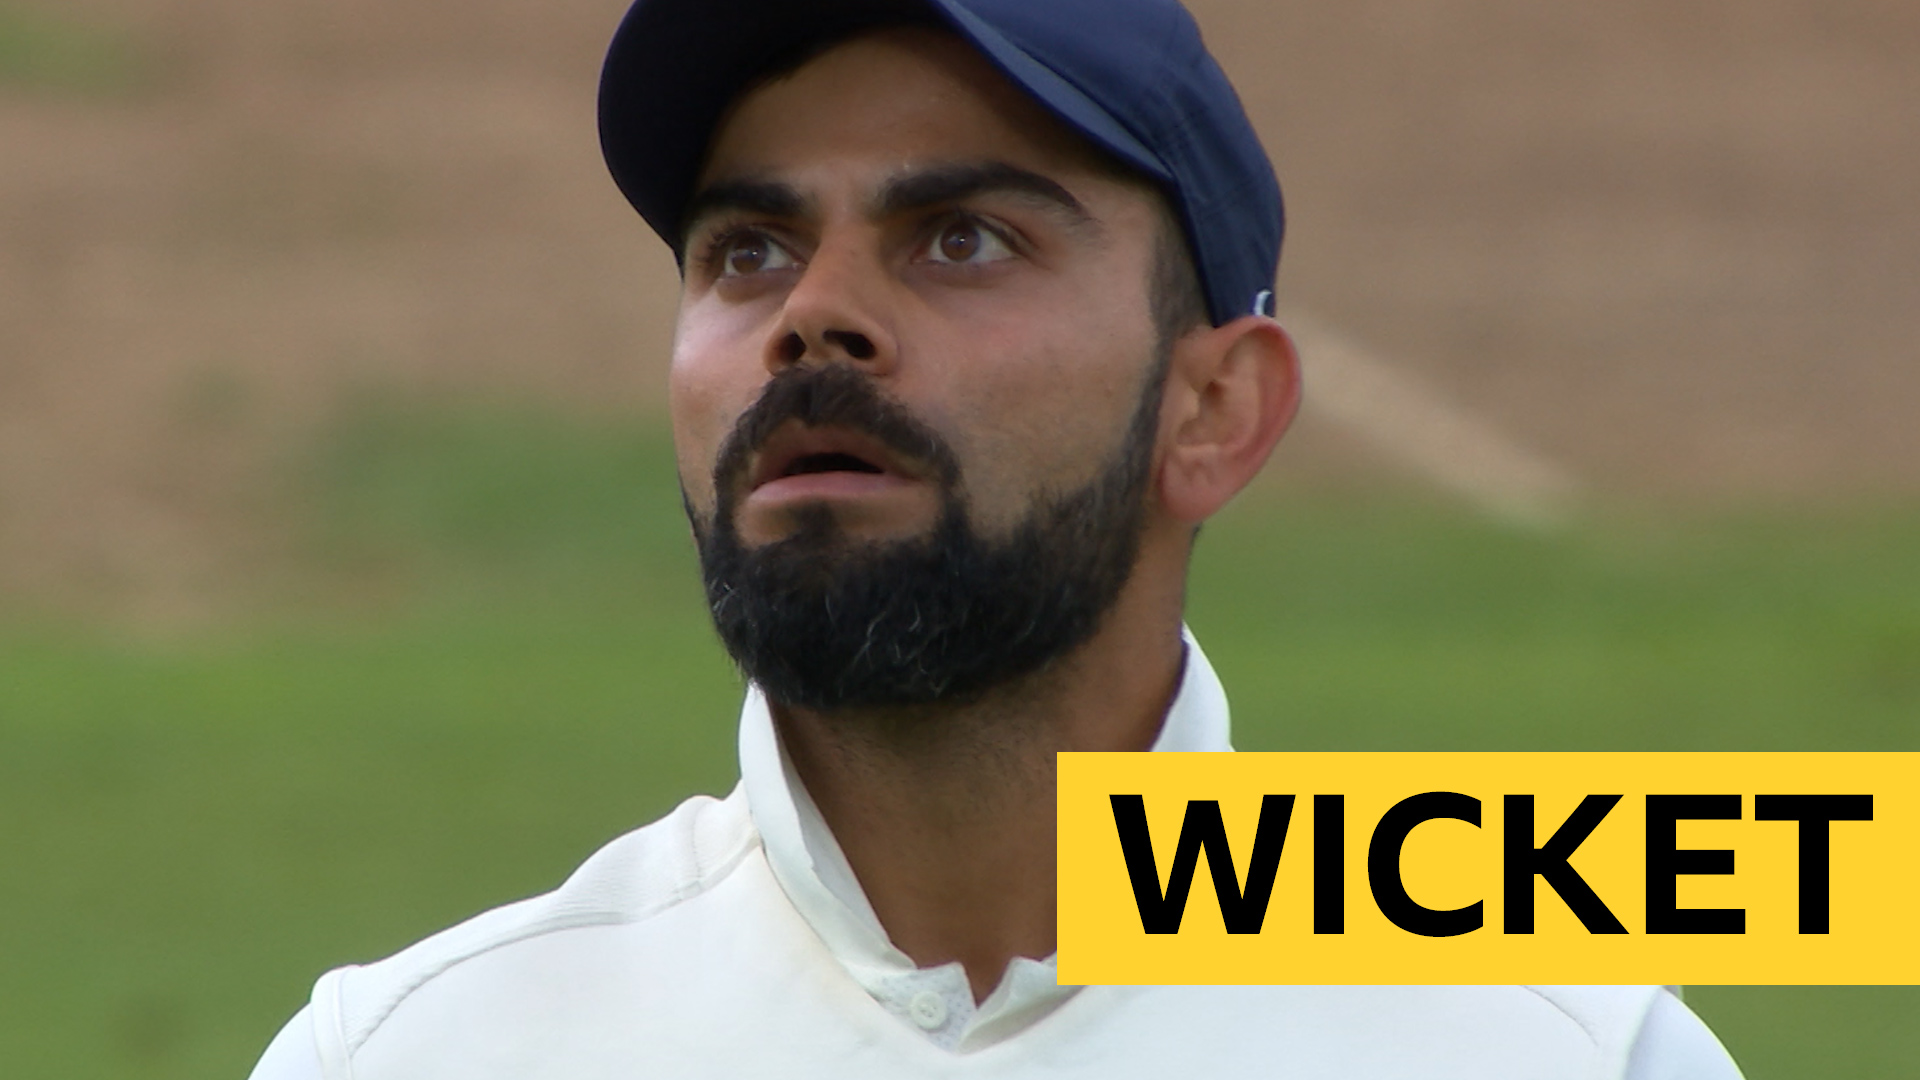 England v India: Virat Kohli dismissed by Adil Rashid on 97